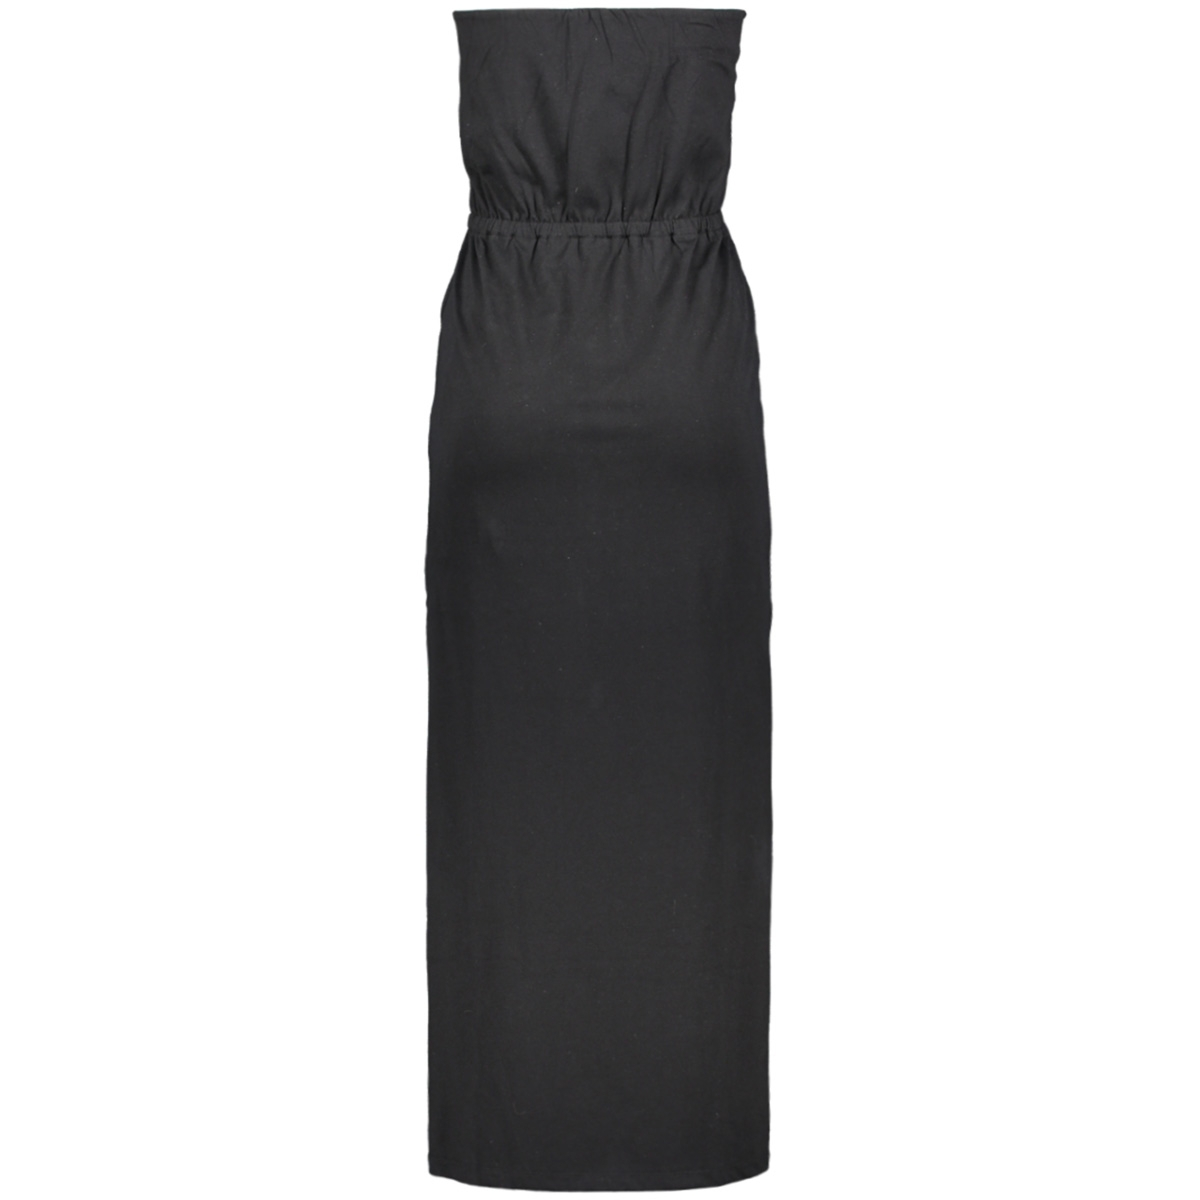 vicalina strapless maxi dress 14057581 vila jurk black